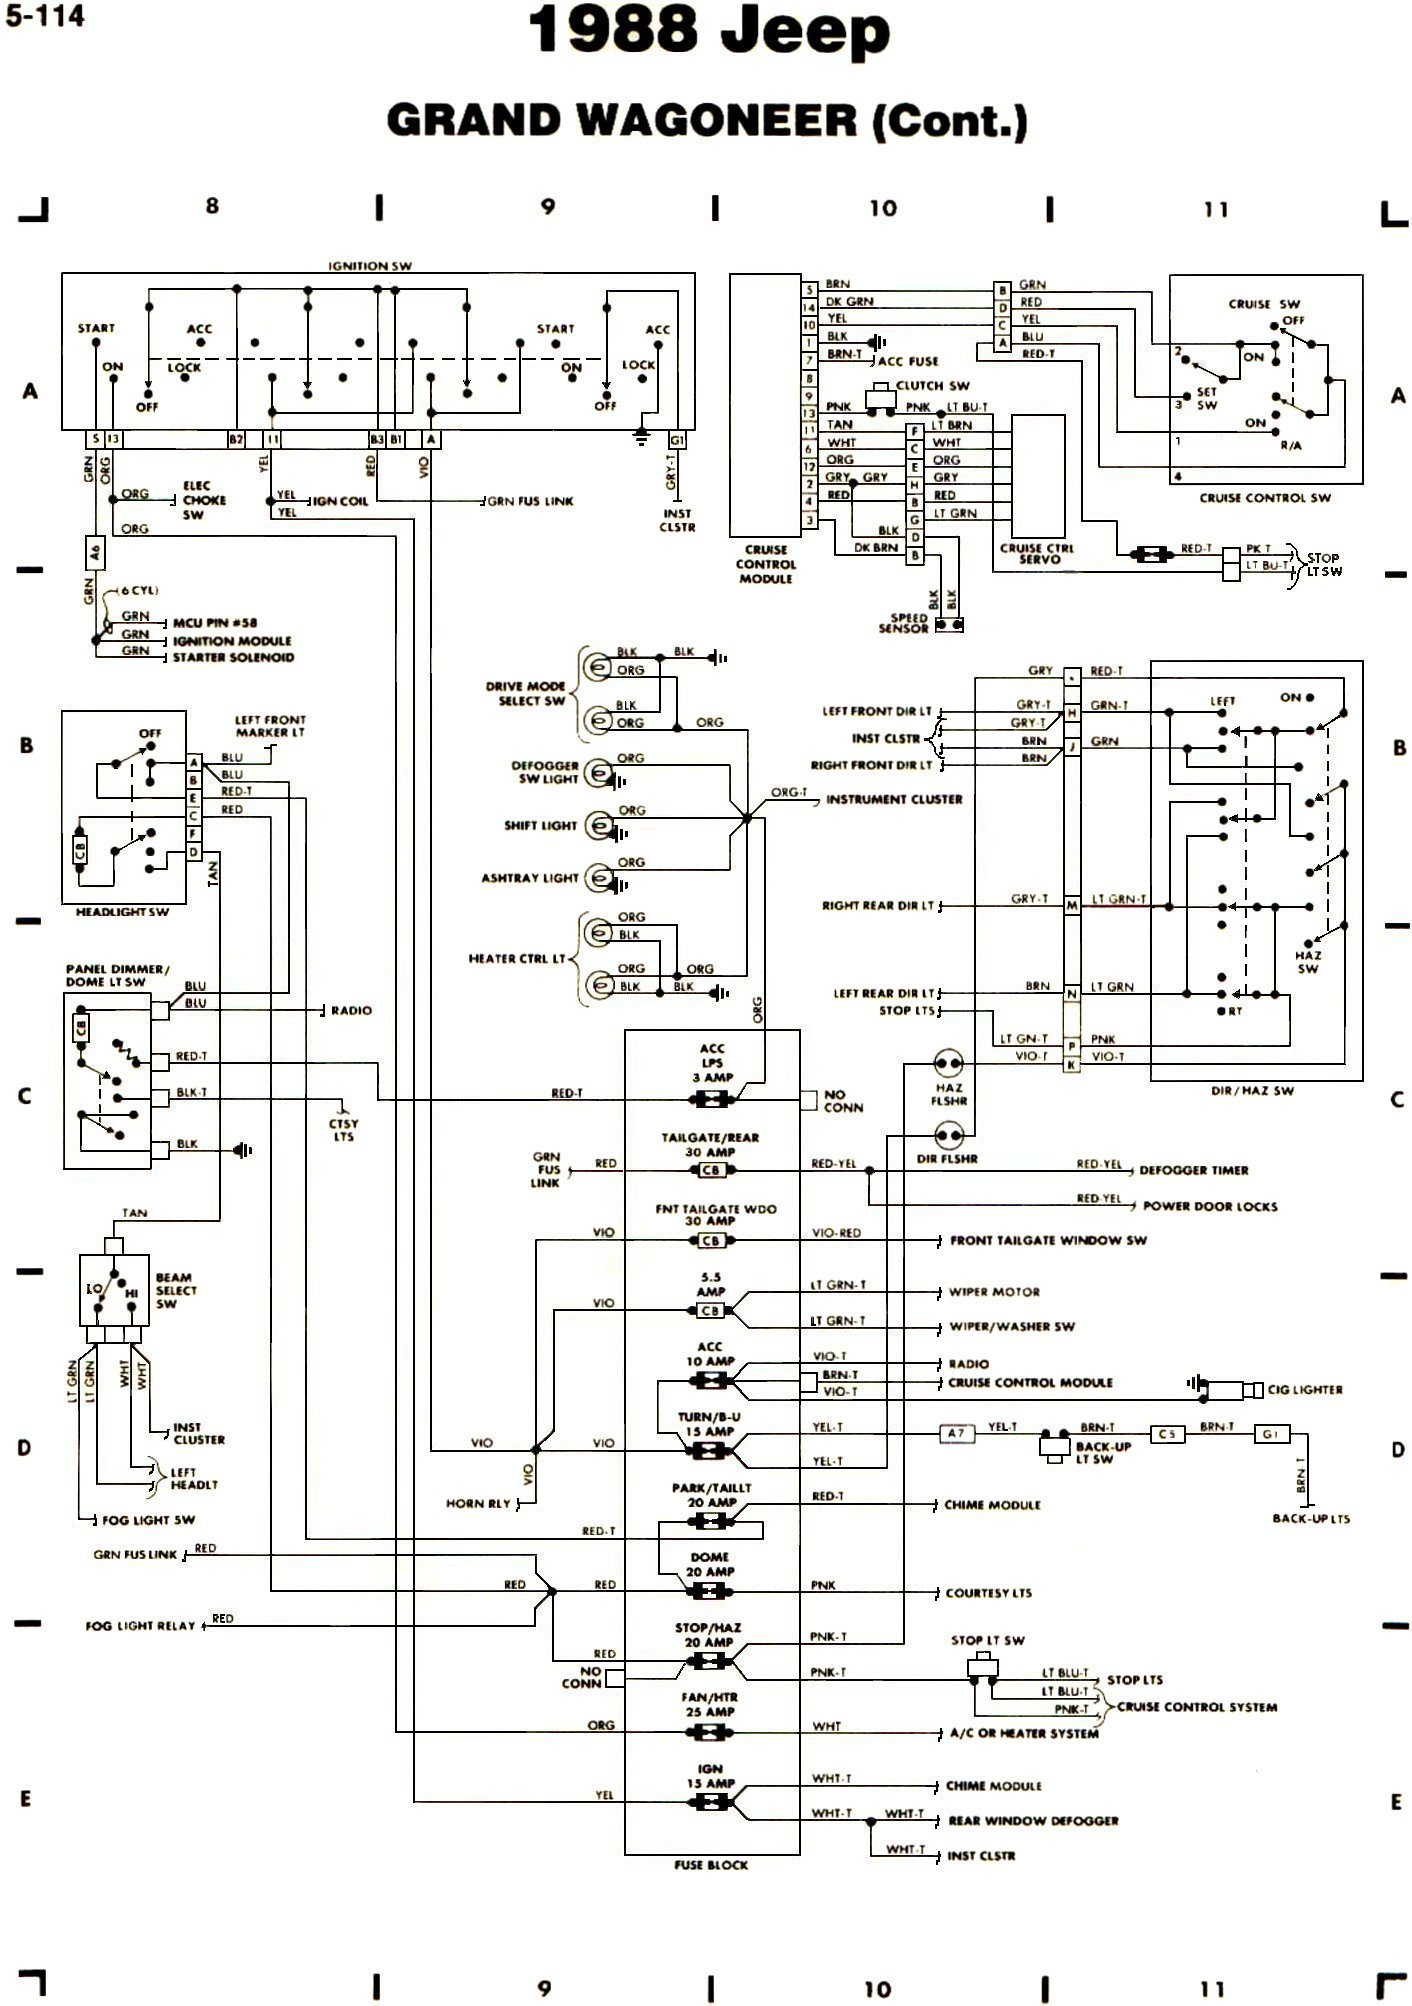 freightliner cruise control wiring diagram wiring schematic 3 wire headlight wiring freightliner headlight circuit diagram [ 1412 x 2006 Pixel ]